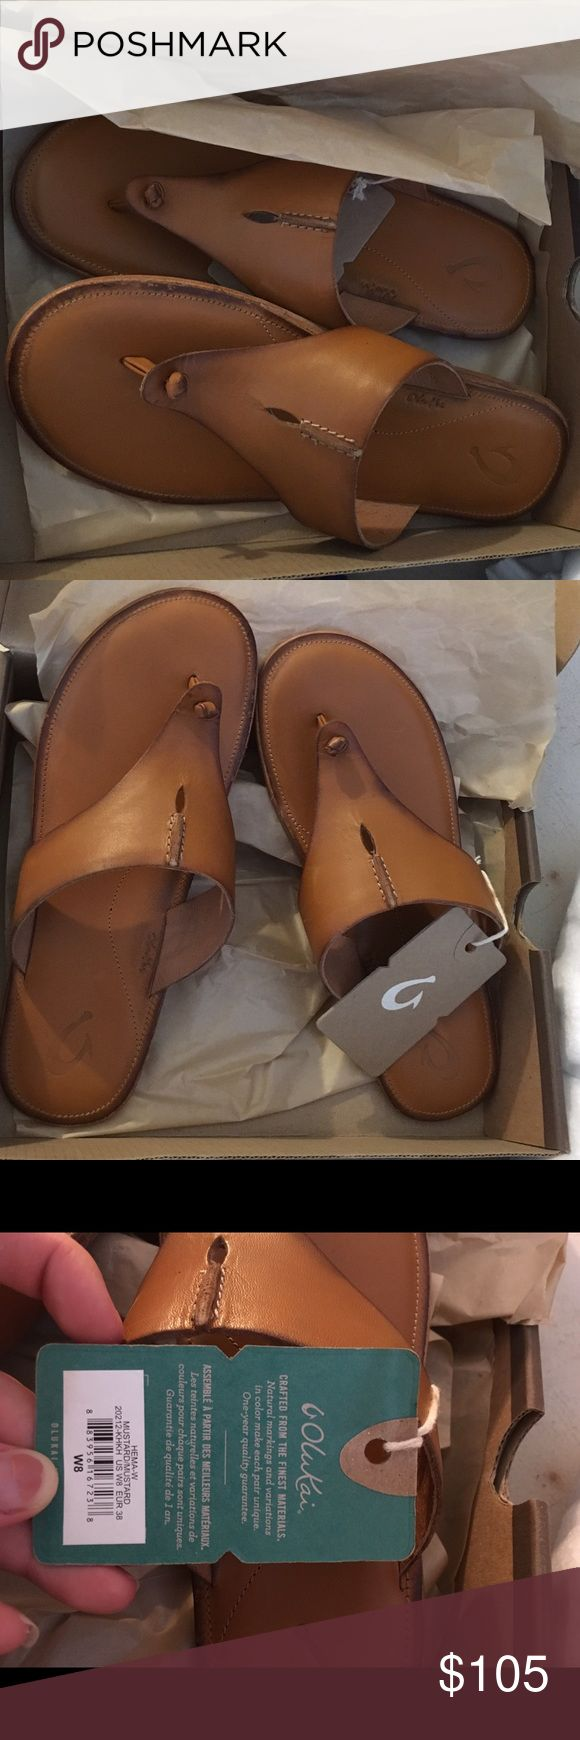 Olukai hema mustard sandals Olukai sandal brand new never worn tags still on and in box. Very cute can be dressed up or worn casually since they're comfortable. The name mustard for the color may sound unappealing but it's a really nice warm light brown with a soft orange undertone that can go with any skin tone! WILL ONLY SELL THROUGH 🅿️🅿️ Olukai Shoes Sandals